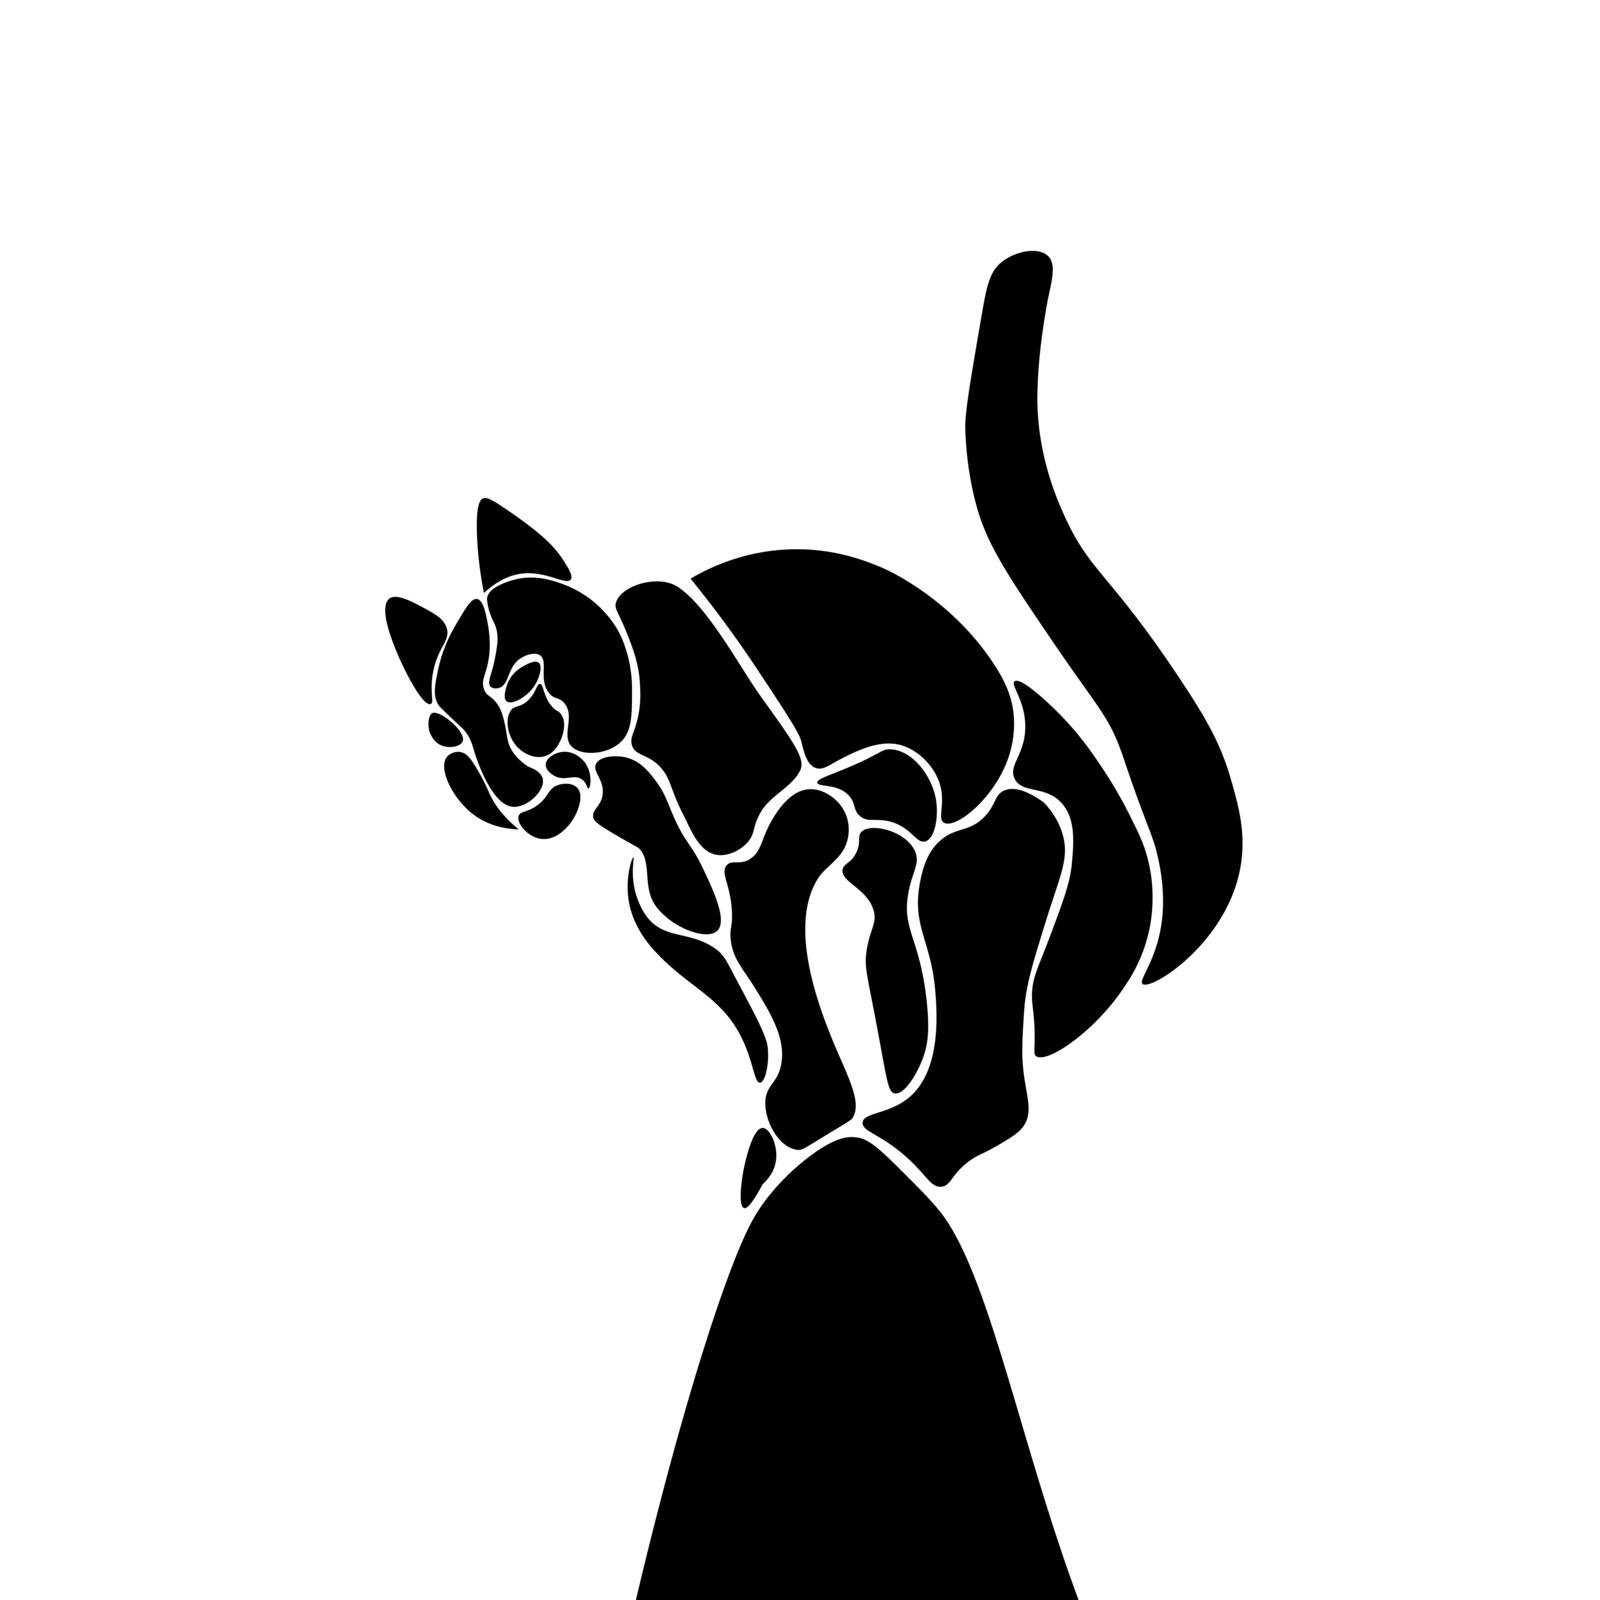 Illustration black cat standing on the roof, vector.